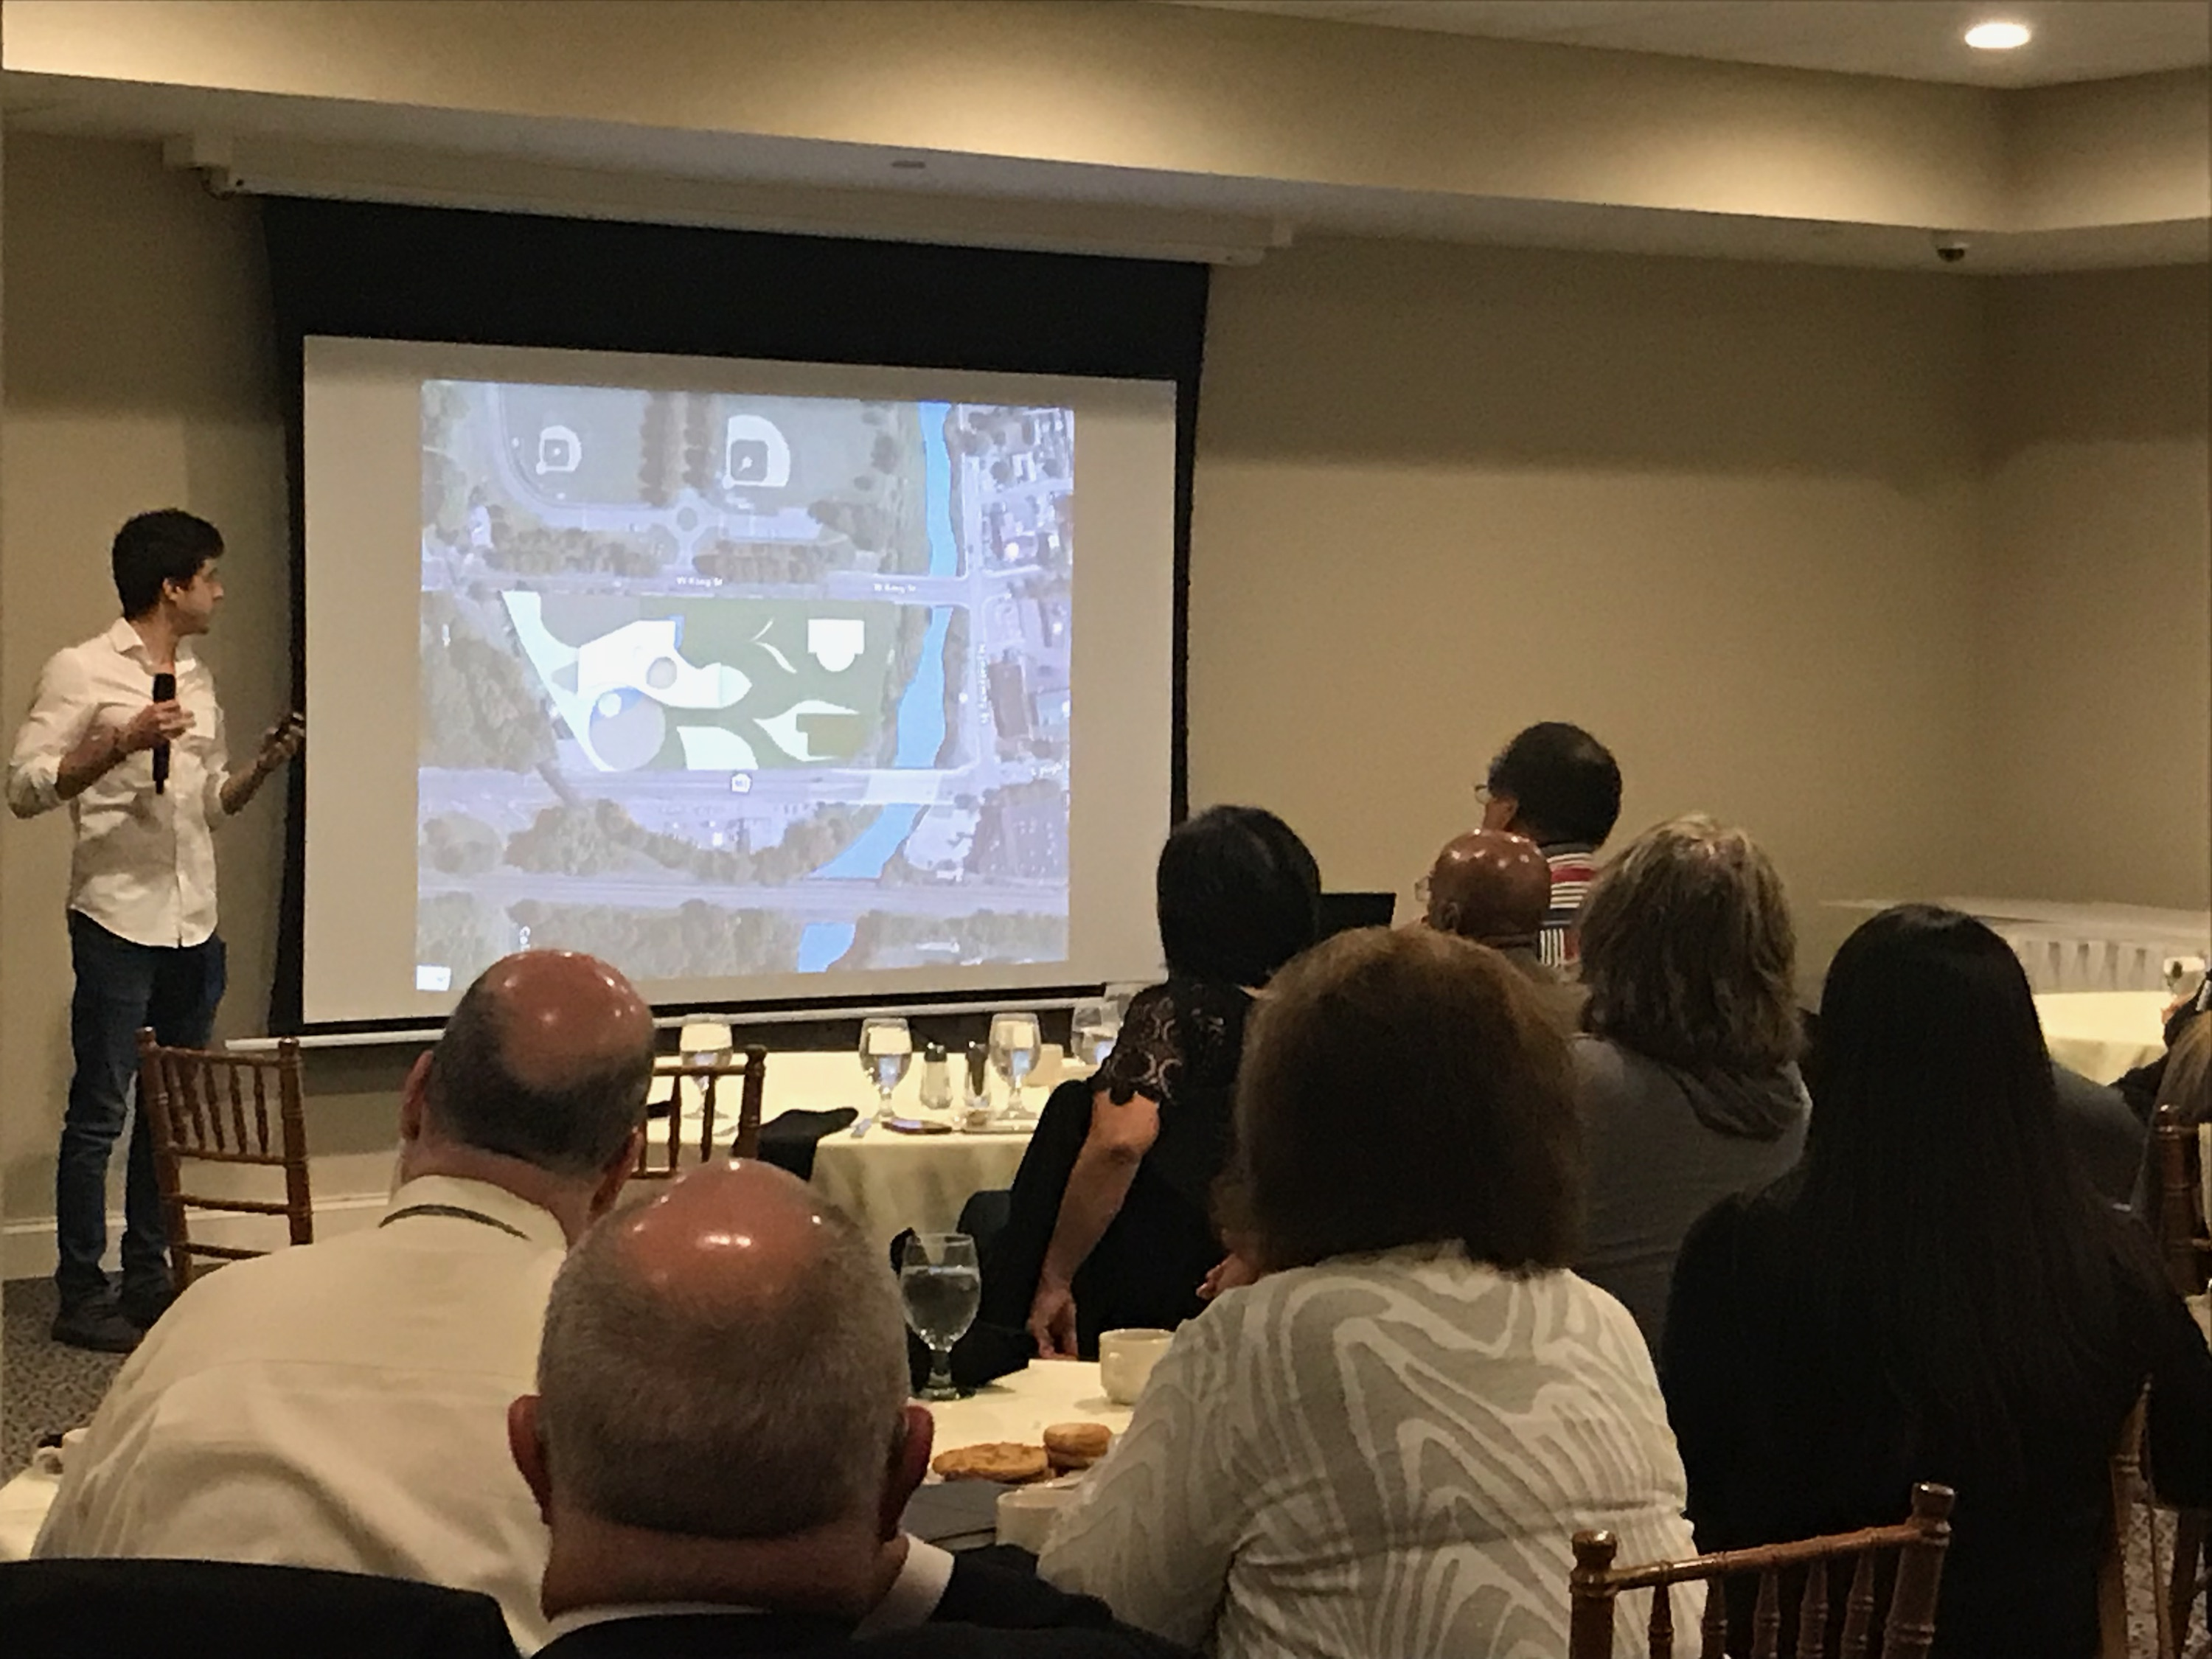 19 4th year Architecture students presented design work in Pottstown, Pa on November 16. 35 community representatives from Pottstown Area Health and Wellness Foundation and other Pottstown organizations participated.